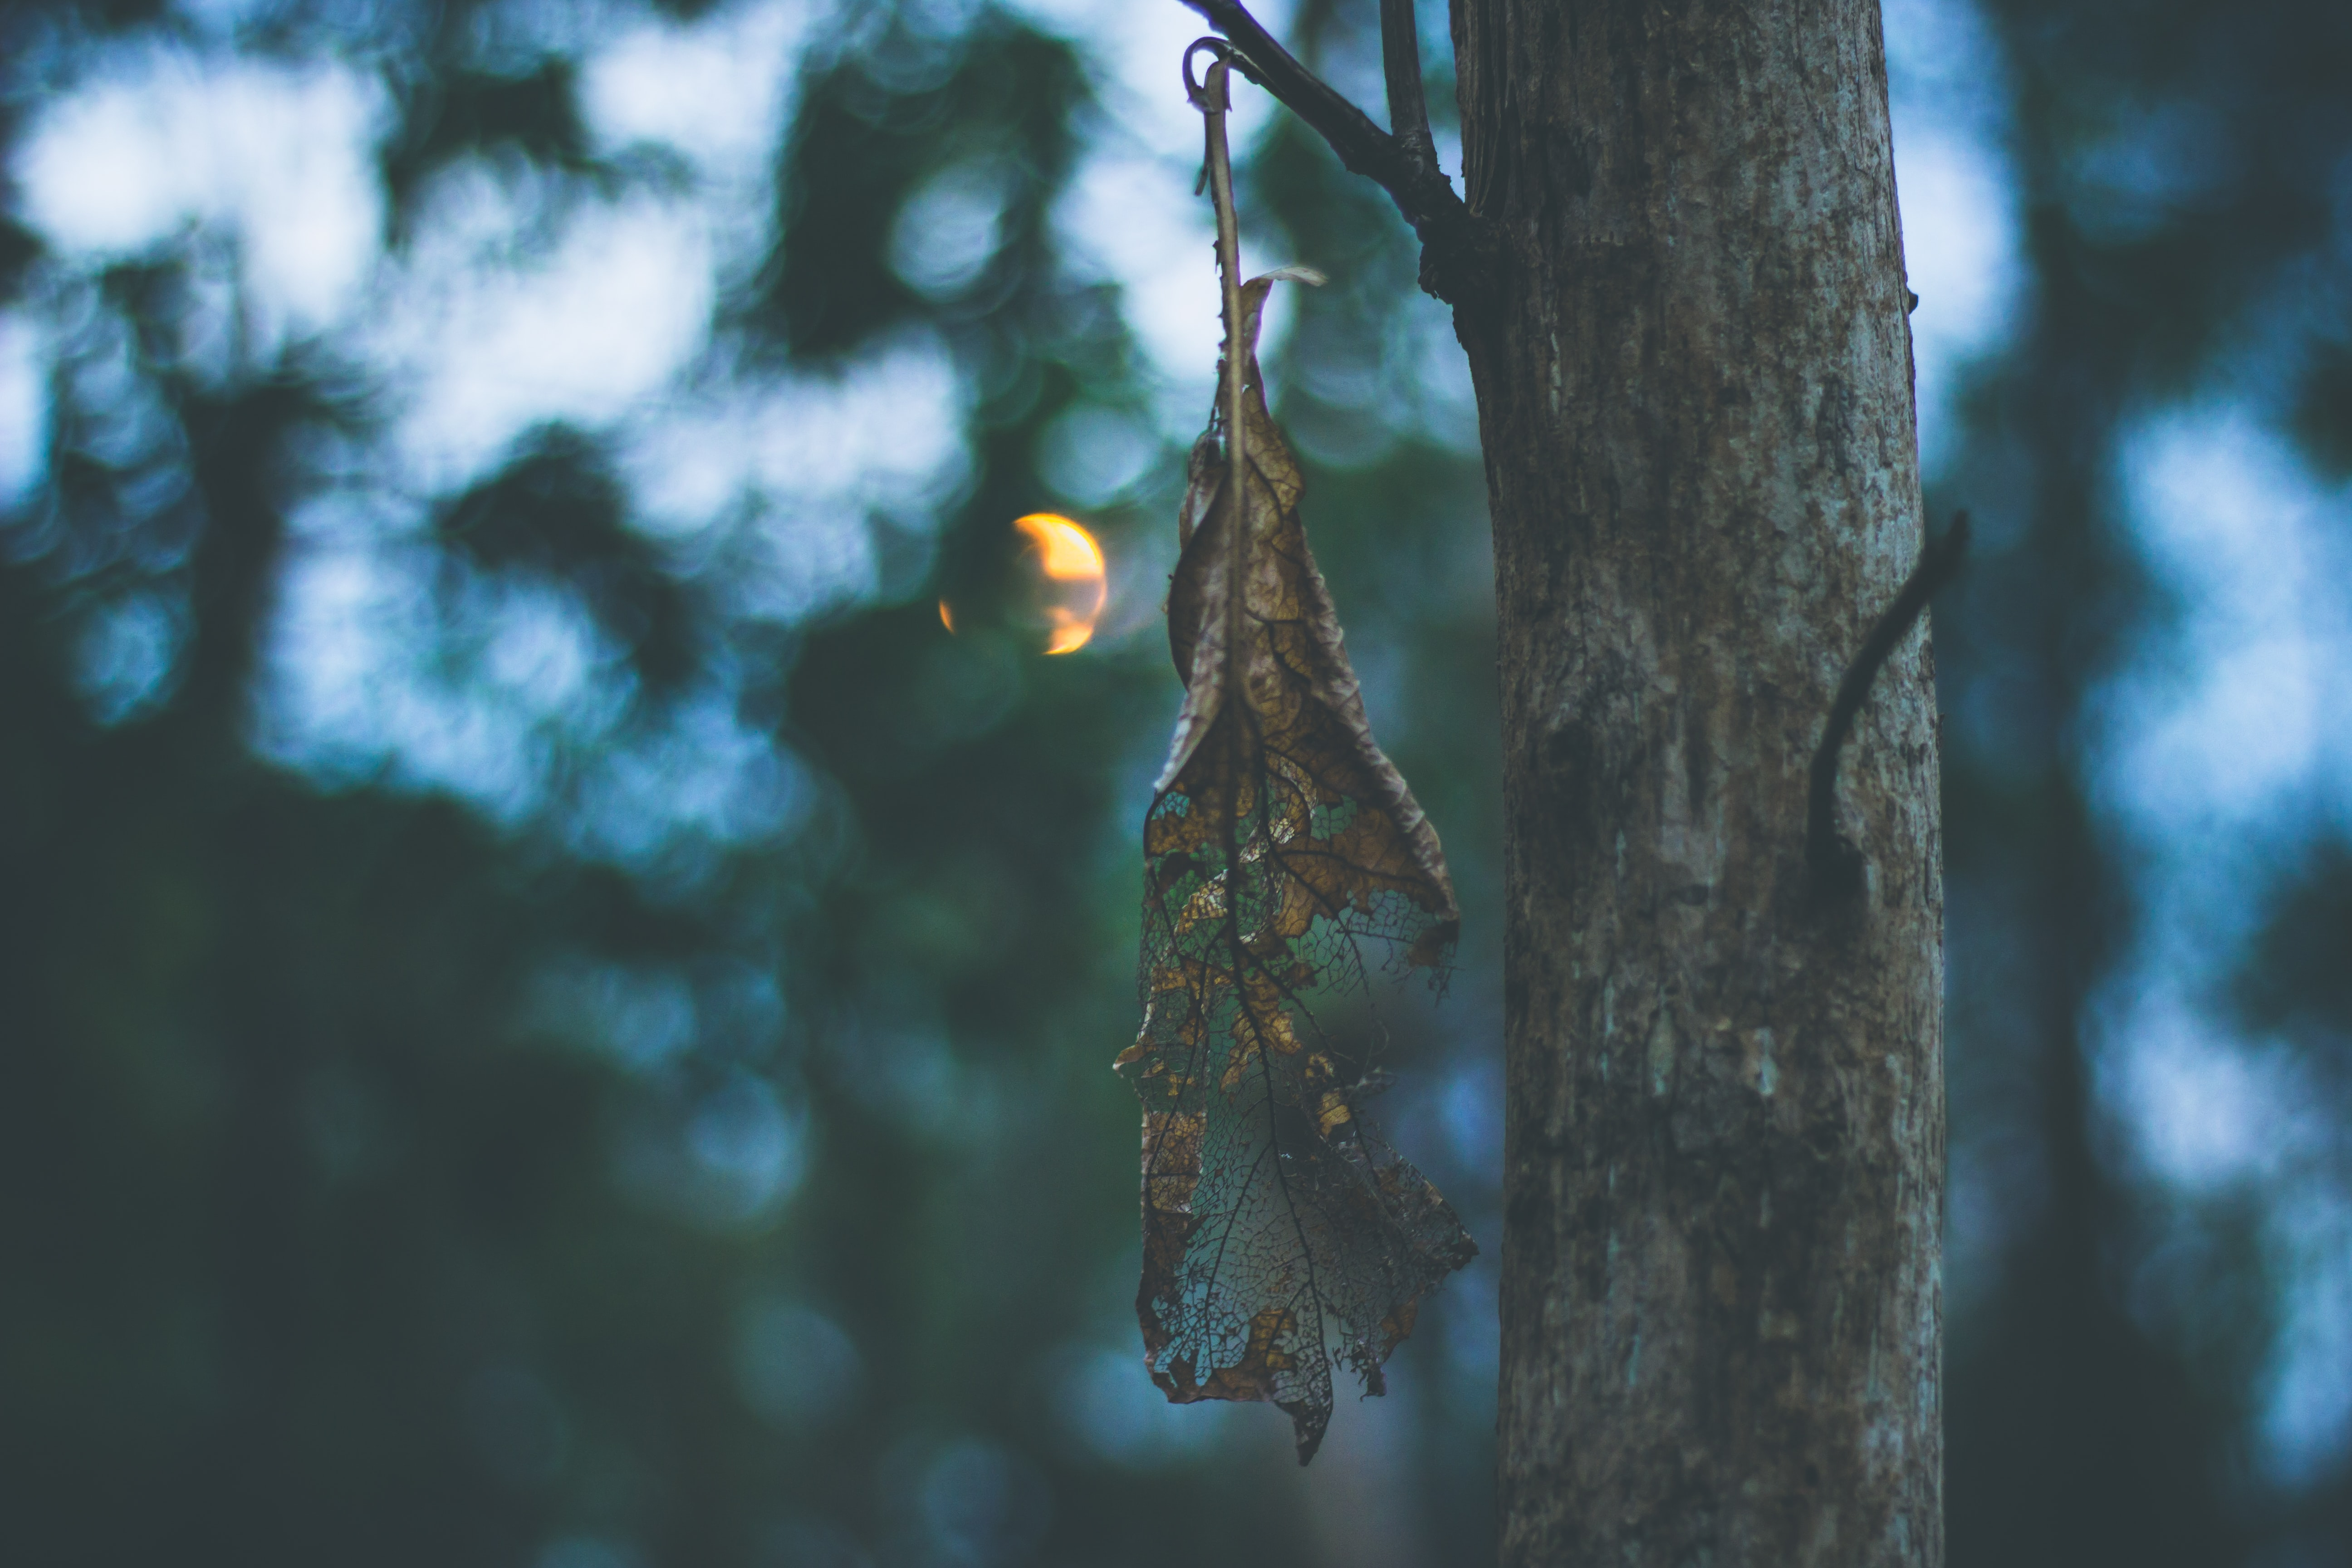 withered leaves on tree close-up photographyt